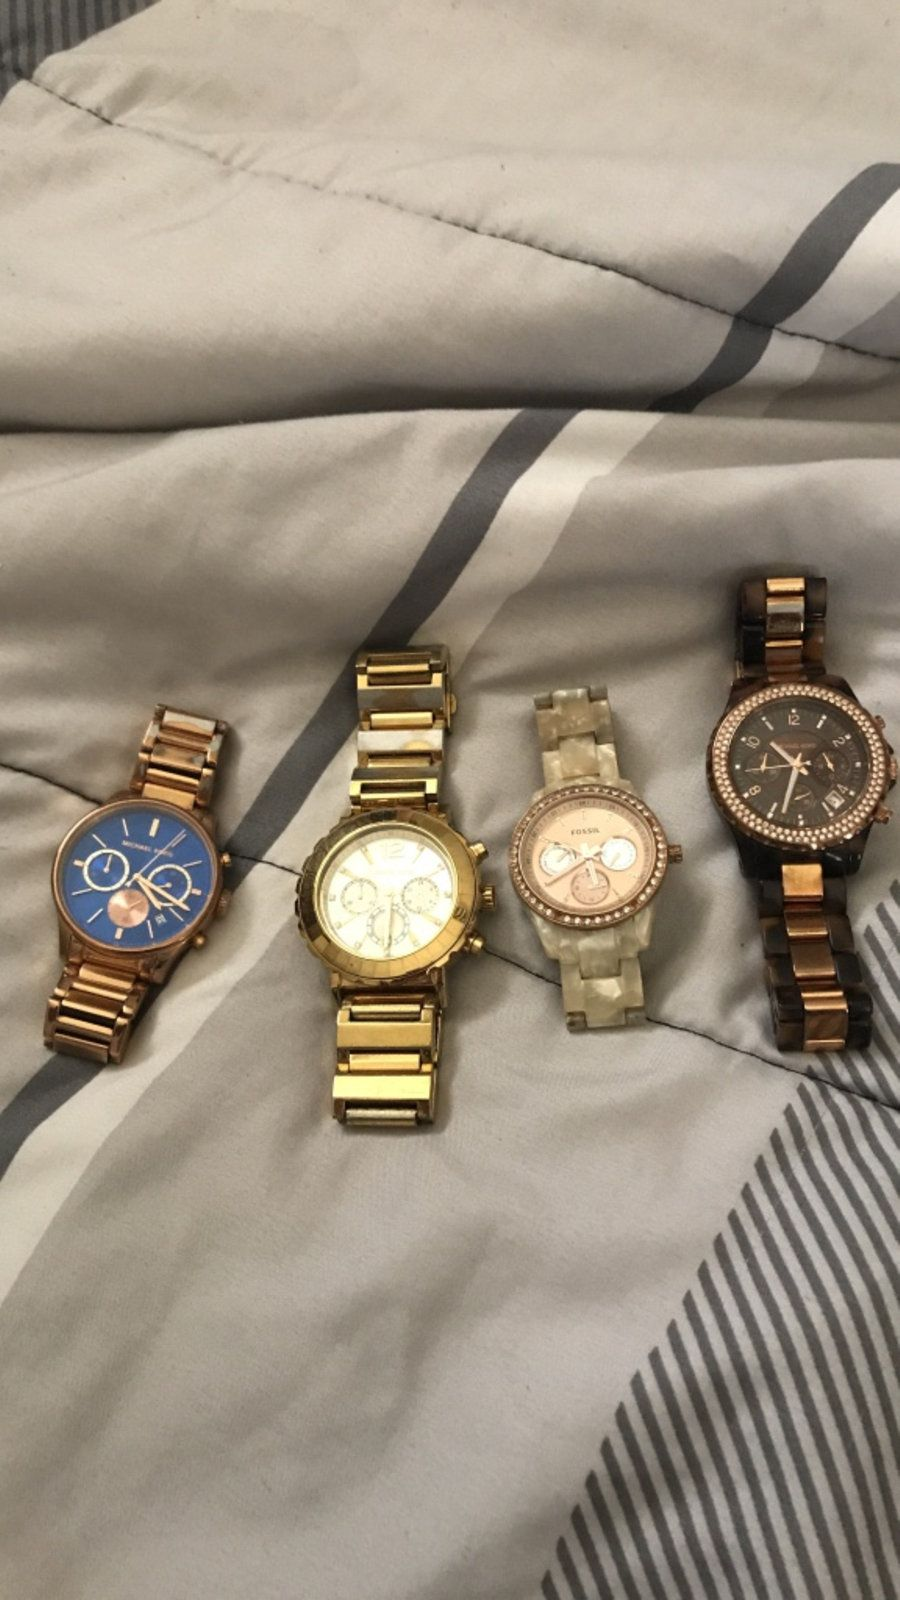 Michael kors and fossil in Abilene letgo Michael kors